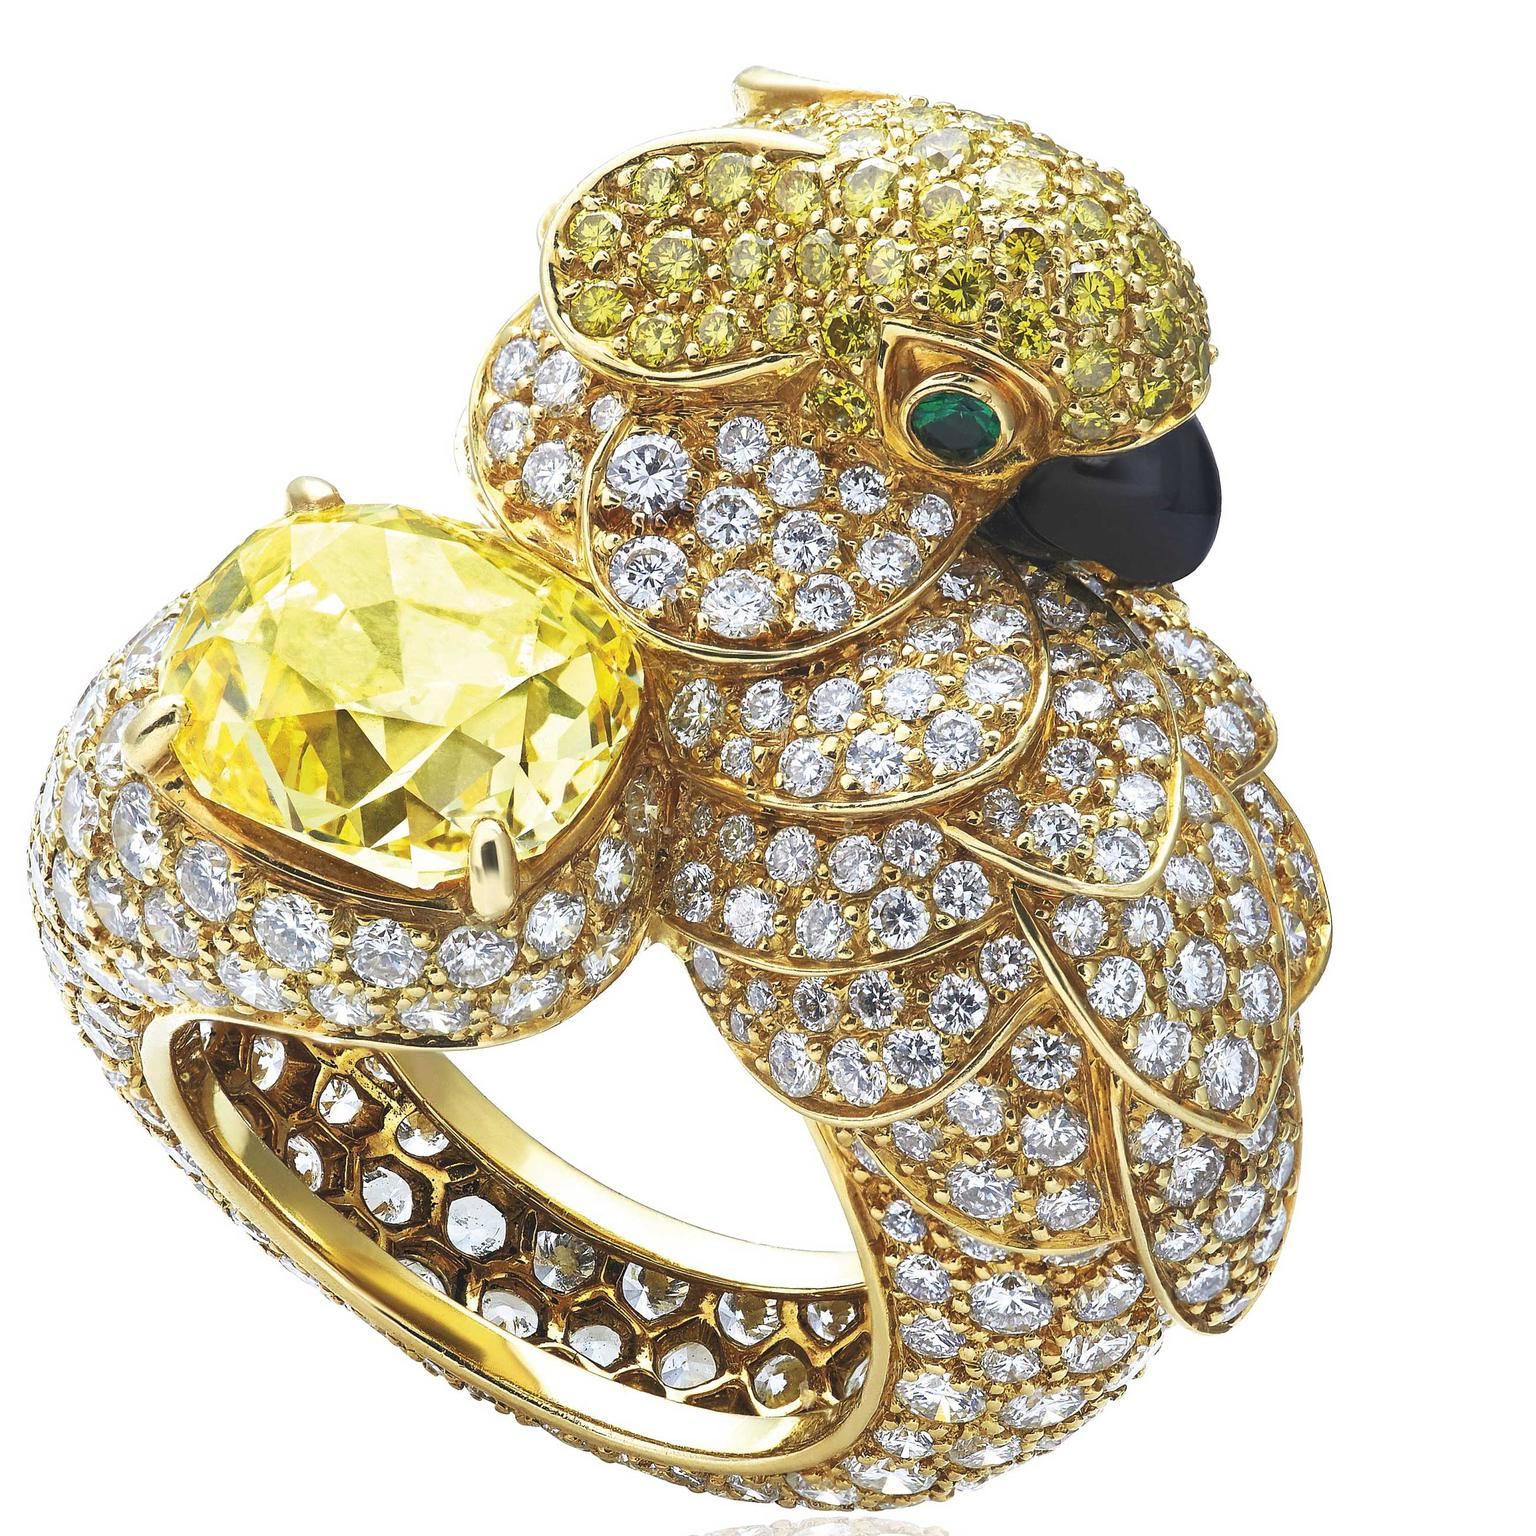 Cartier Les Oiseaux Libérés ring with yellow diamond